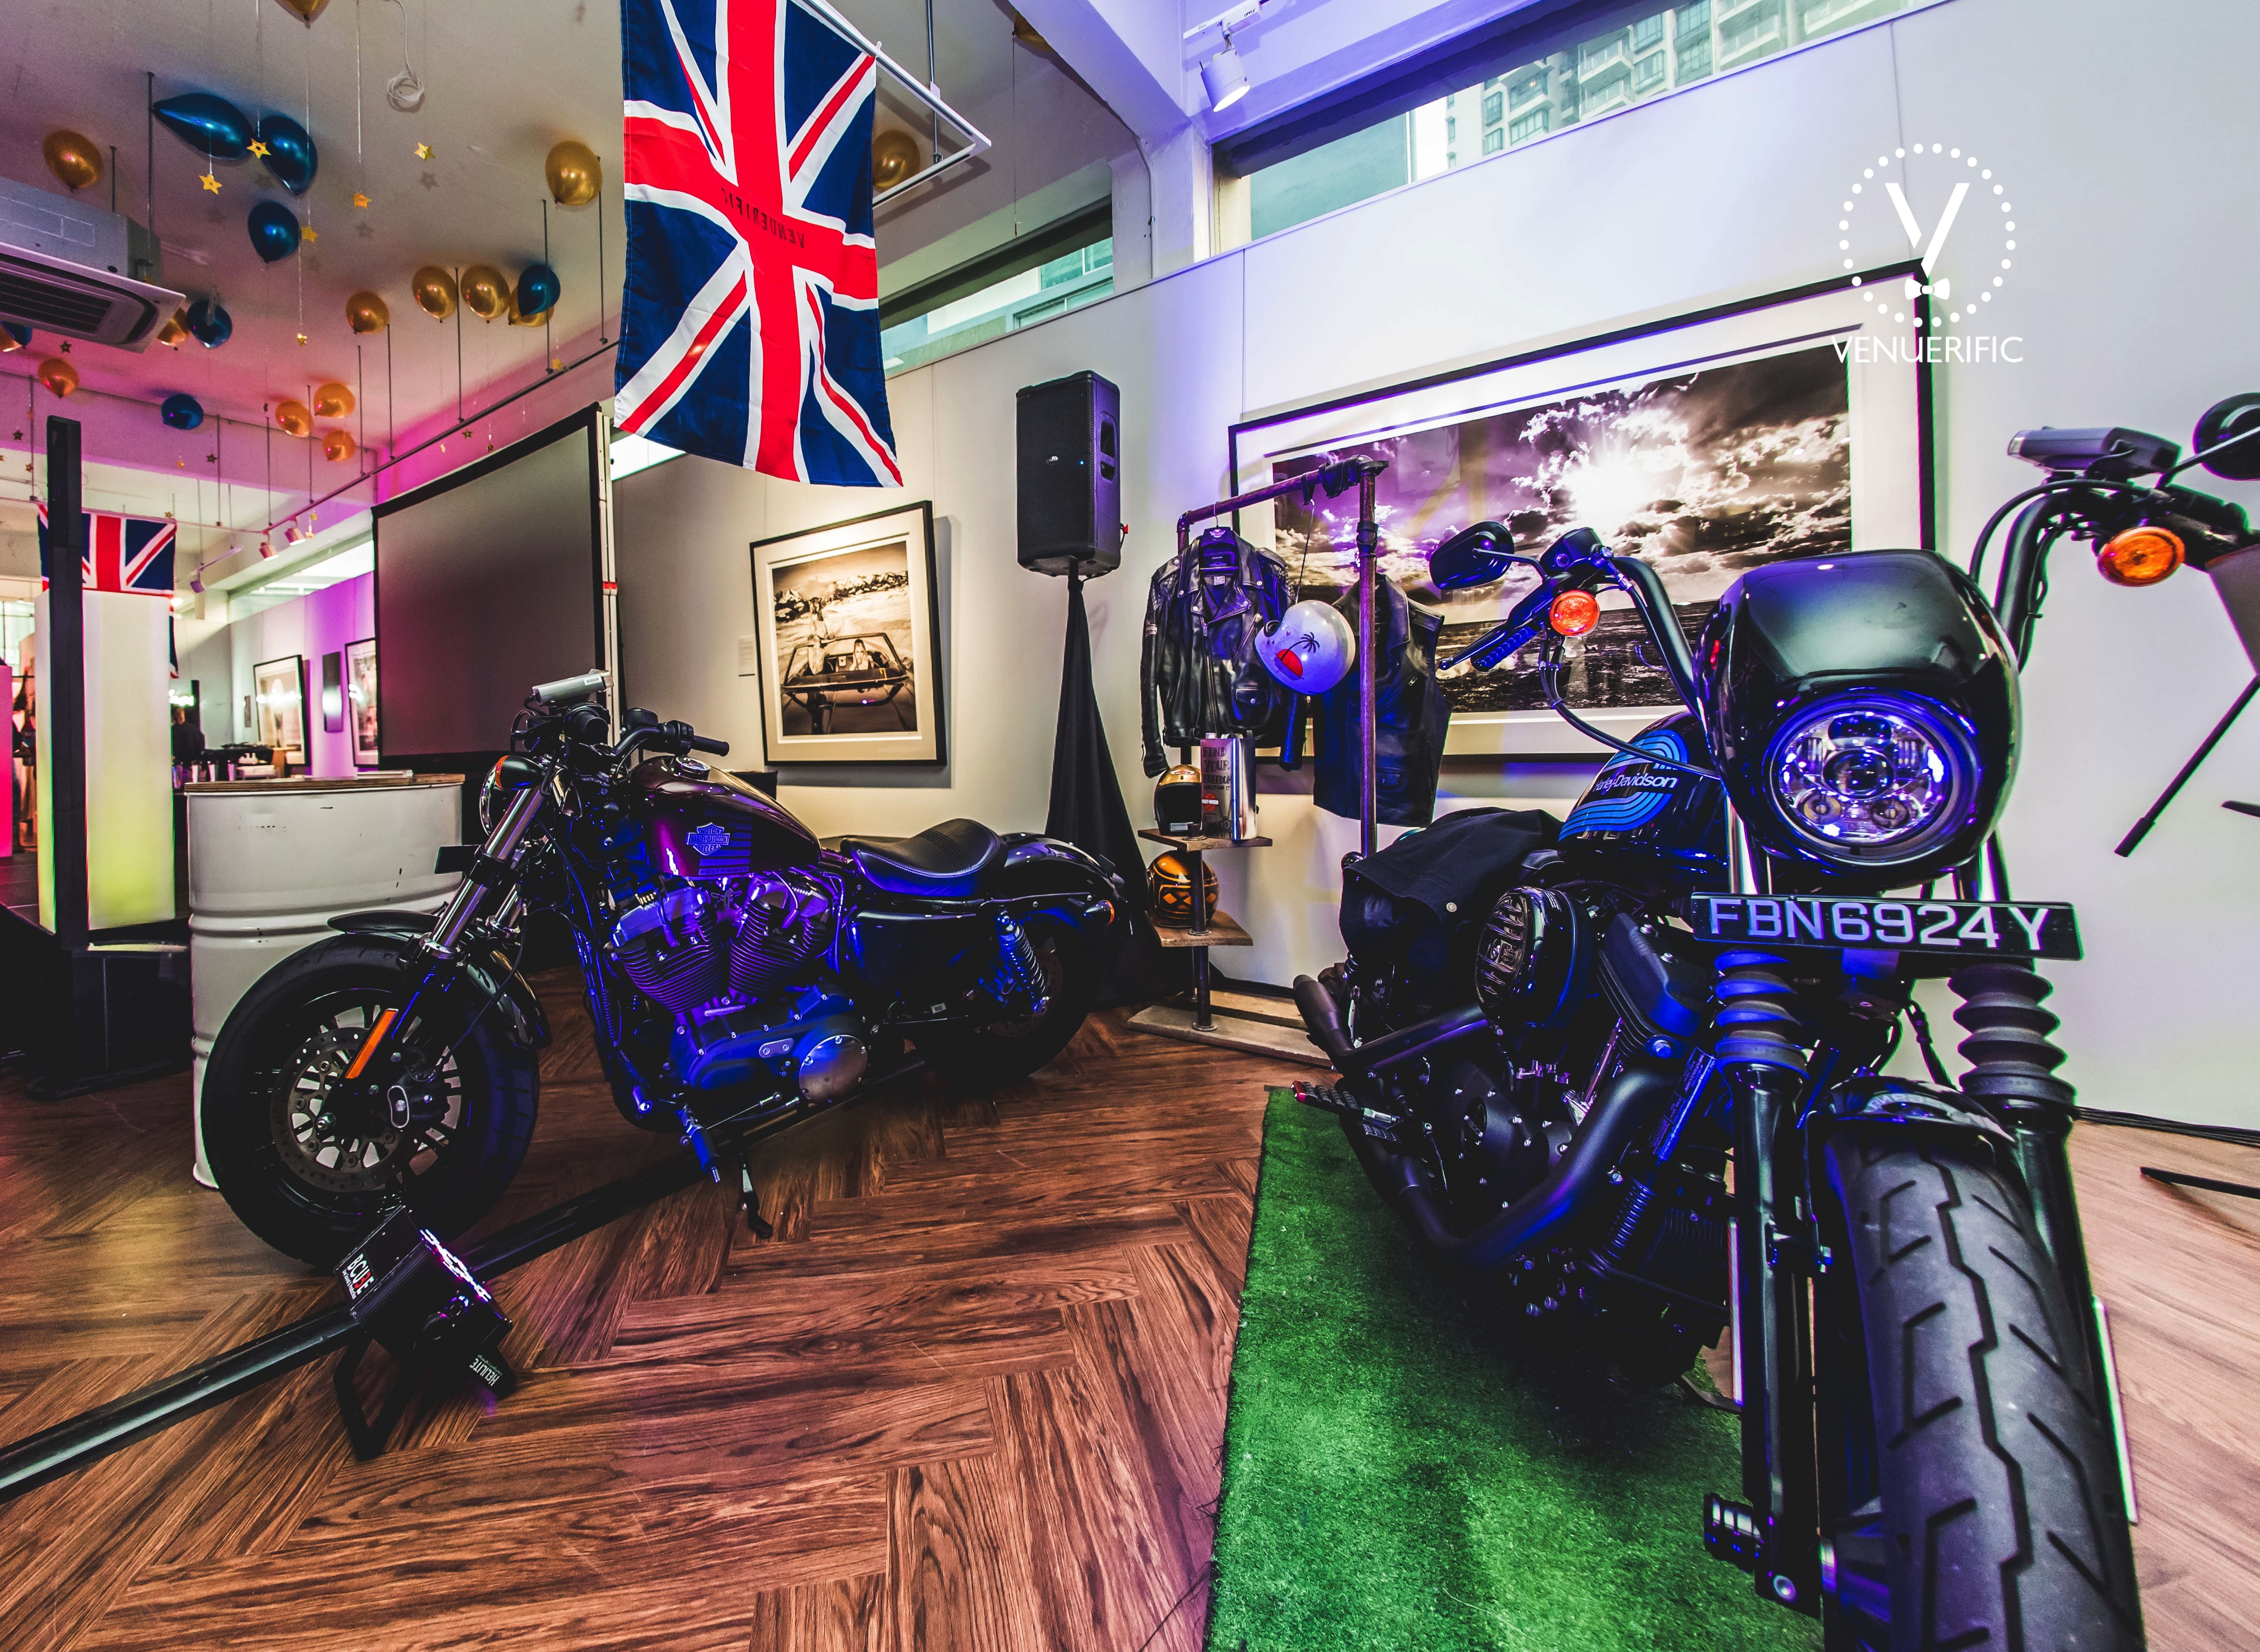 venuerific-blog-6th-anniversary-party-harley-davidson